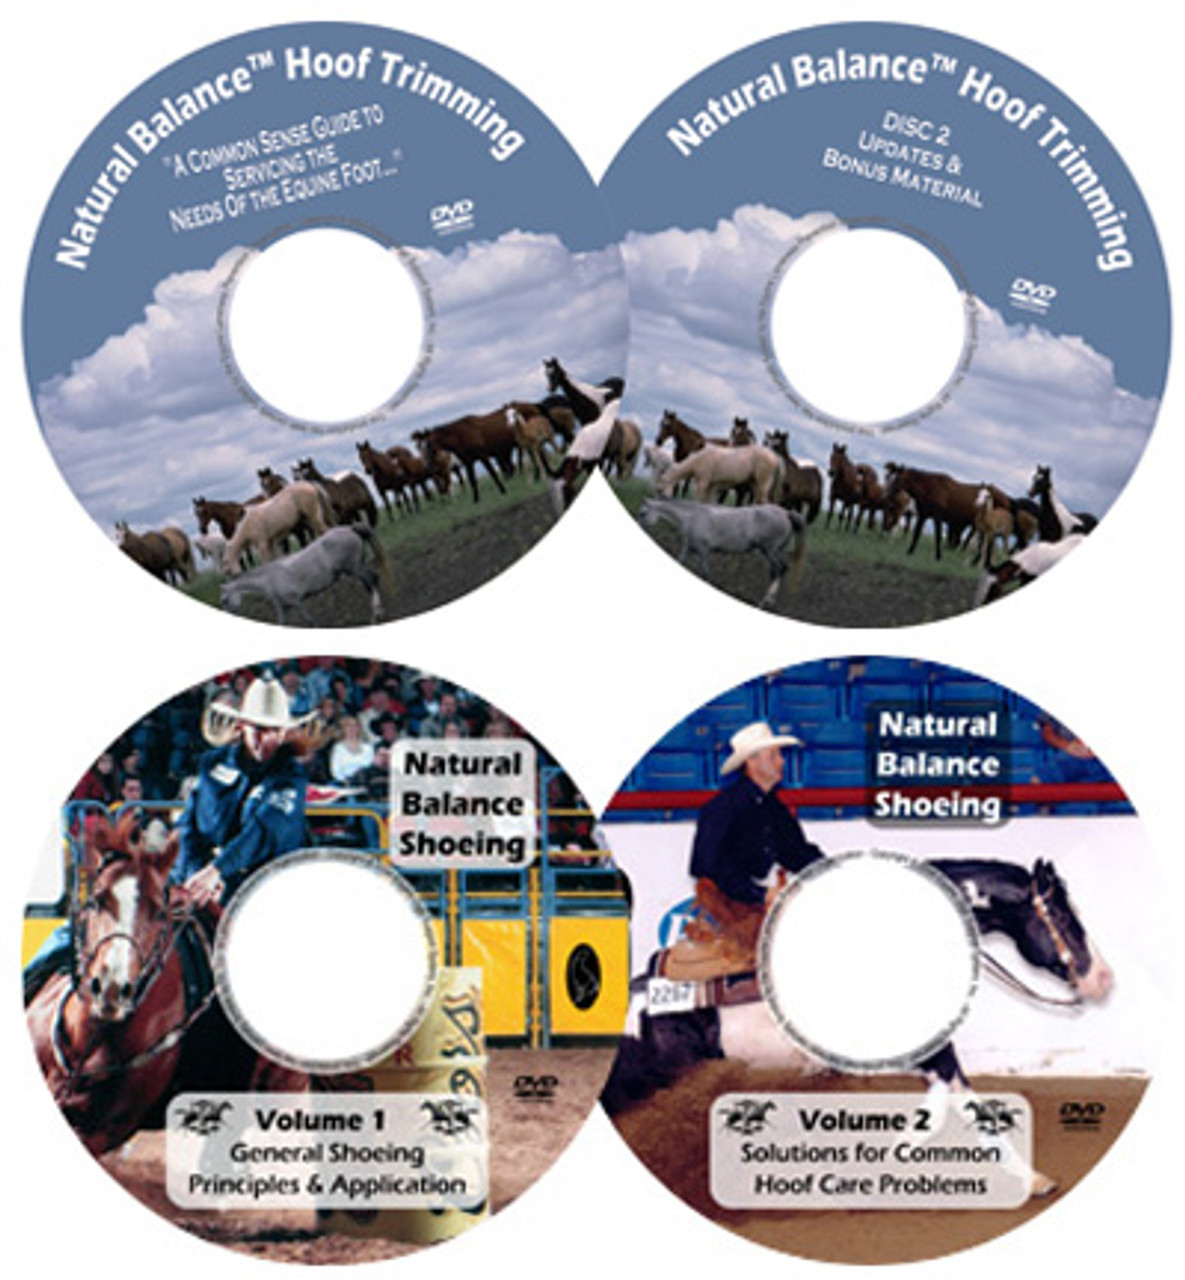 nb hoof trimming nb shoeing dvd combo pack [ 1185 x 1280 Pixel ]